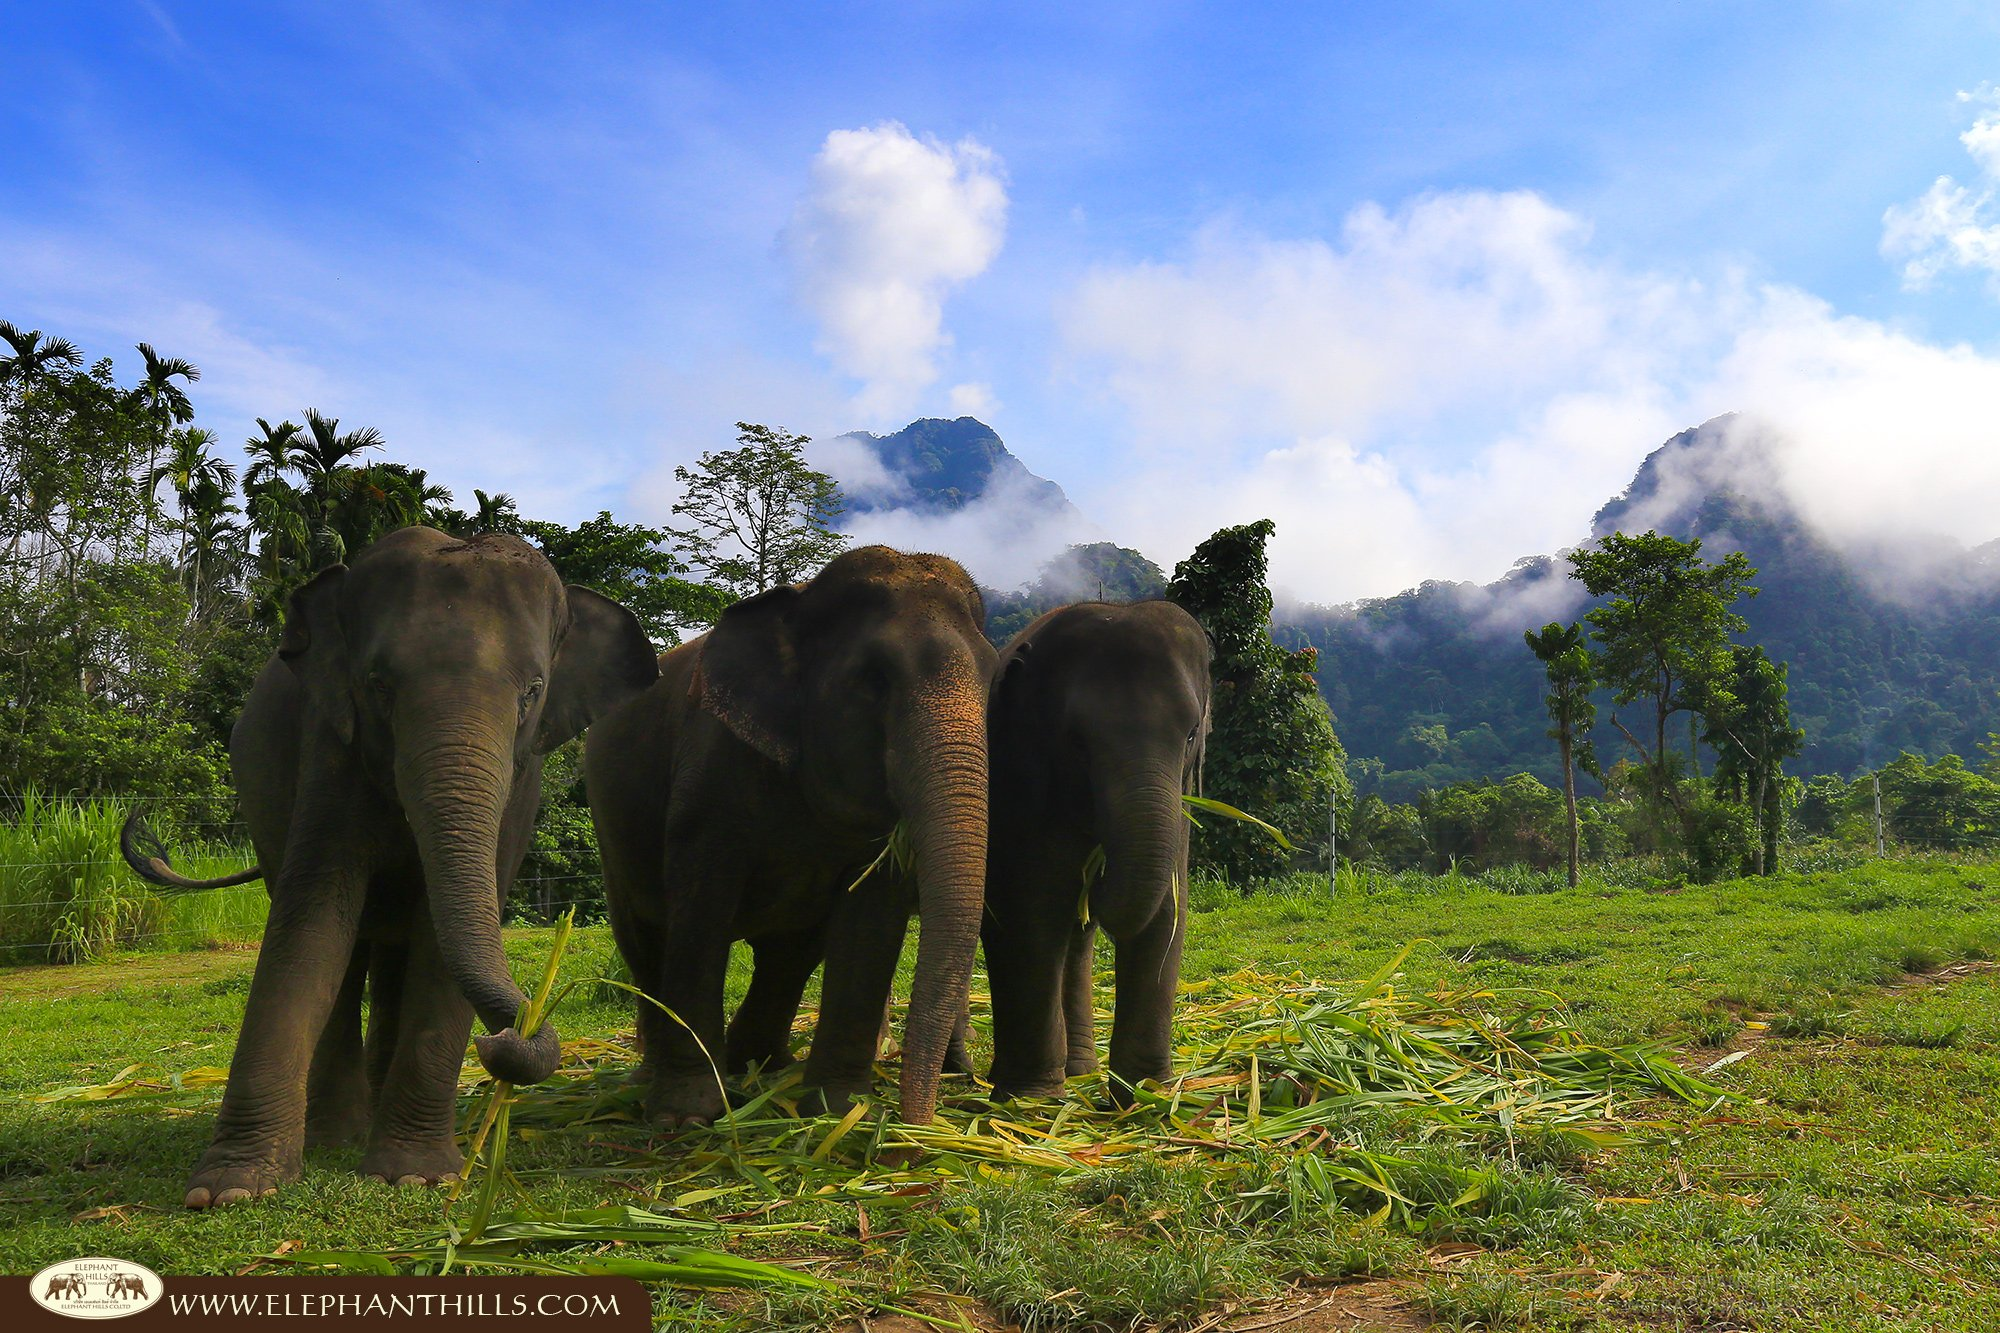 Time for a snack for a trio of elephants at Elephant Hills, Khao Sok